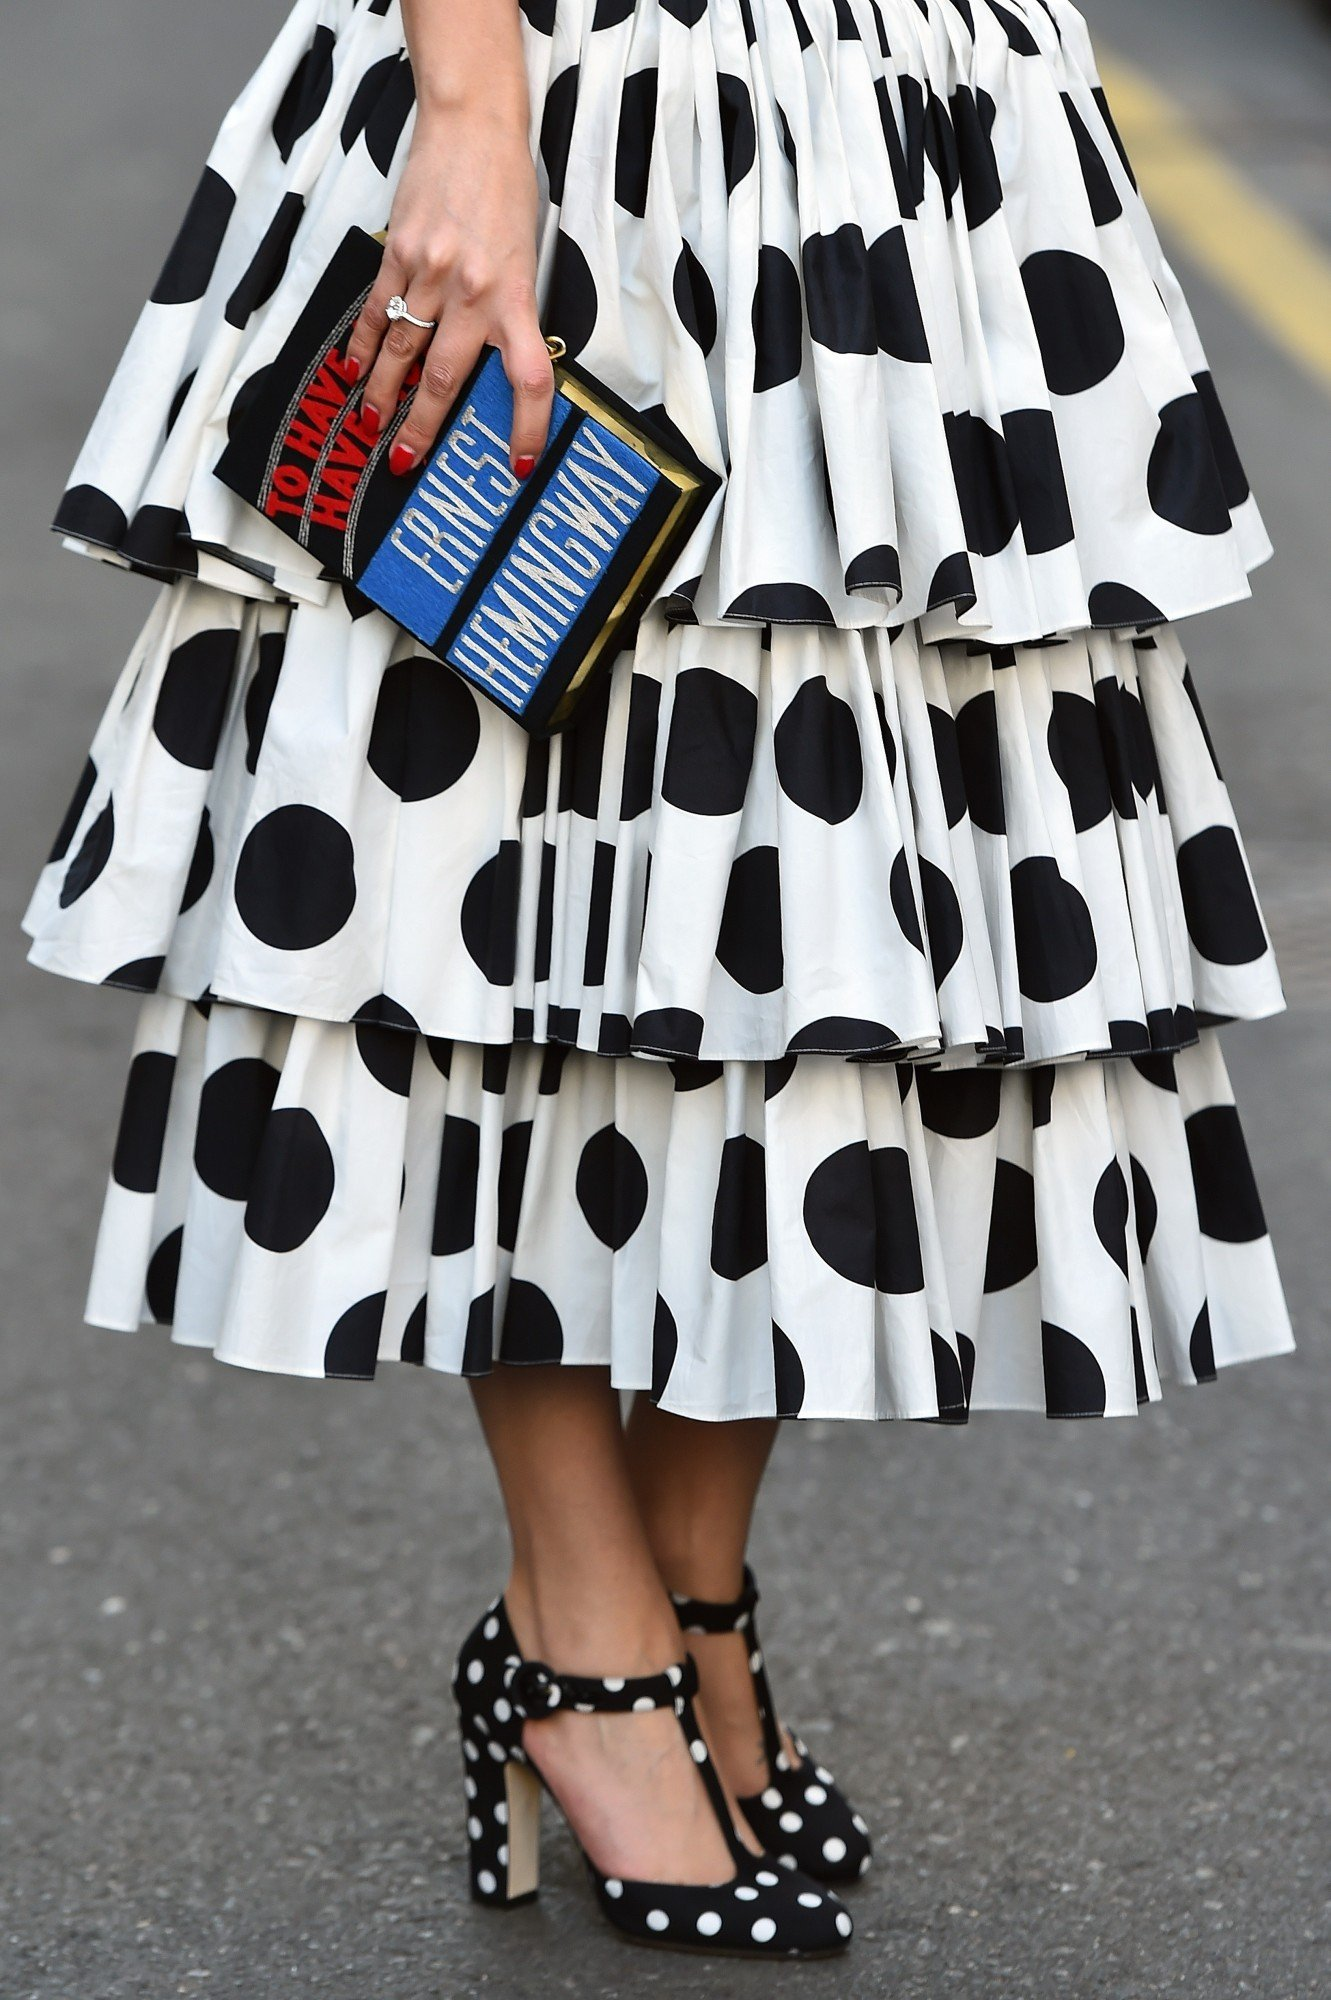 Model Lise Grendene poses in the street before the show for fashion house Dolce & Gabbana at the women Fall / Winter 2015/16 Milan's Fashion Week on March 1, 2015.  AFP PHOTO / GABRIEL BOUYS        (Photo credit should read GABRIEL BOUYS/AFP/Getty Images)